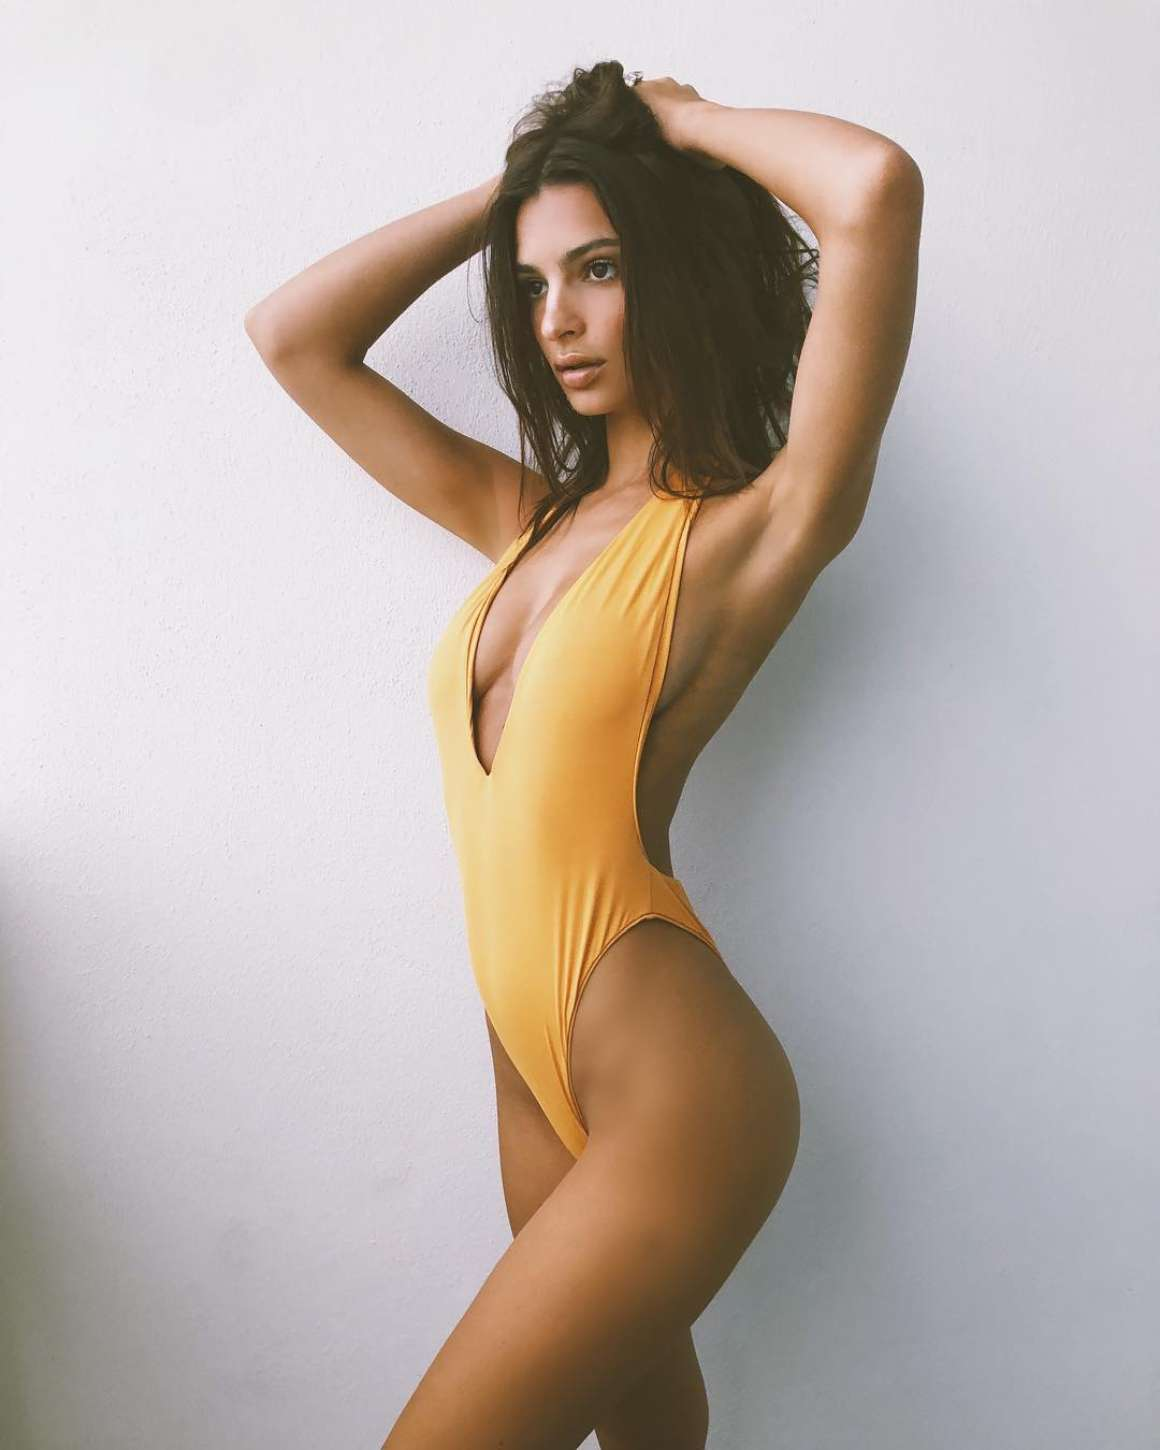 Emily Ratajkowski in Swimsuit – Social Media Pics